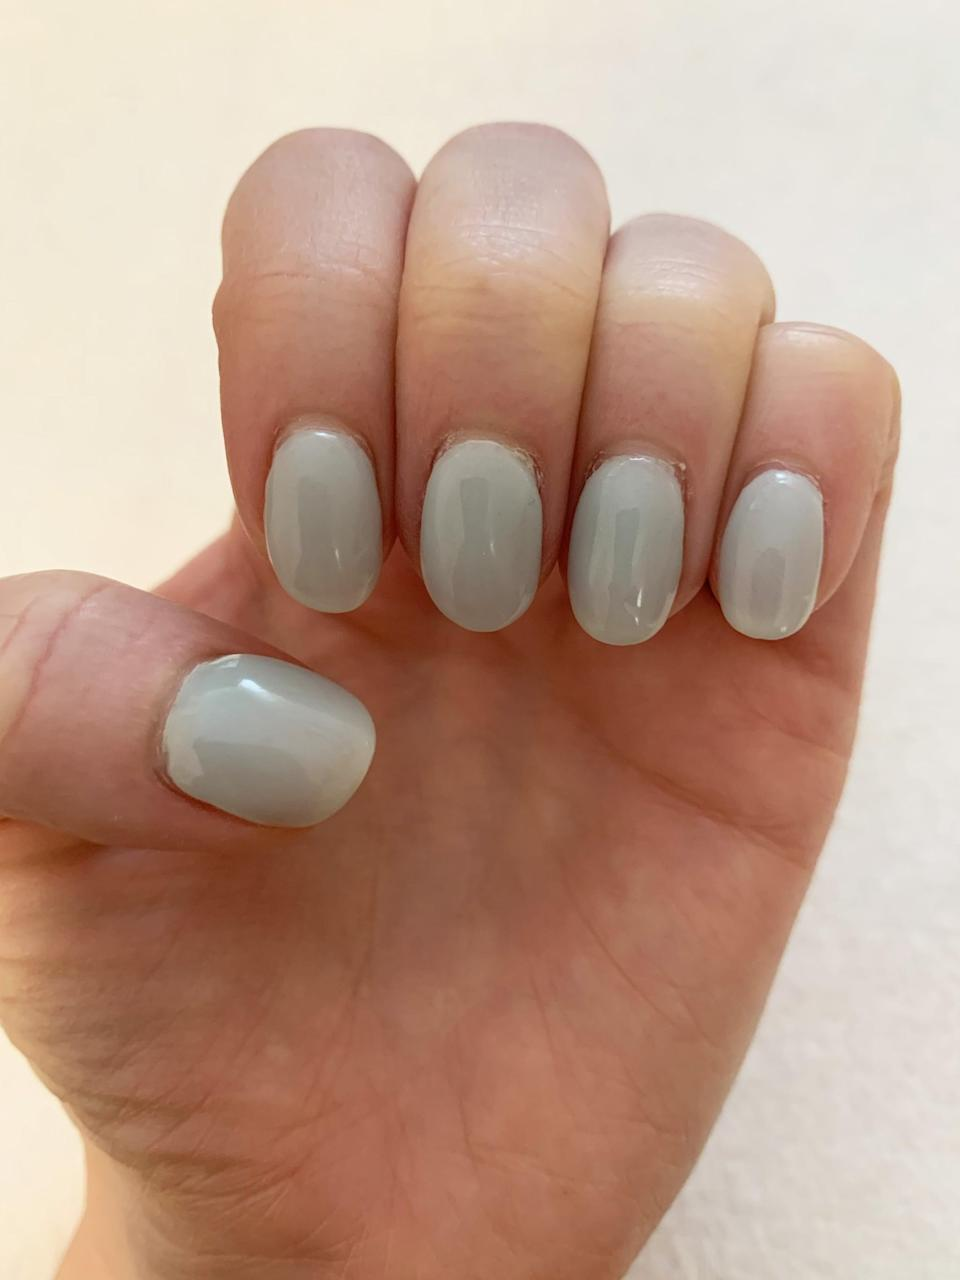 <p>For the price and usability, Nailboo is great. It's a perfect starter system if you're just getting into dip nails or want to give a fun gift. It's not the most advanced system and if you're used to giving yourself fancy manicures, you may want to spend a few more bucks on a professional kit.</p>